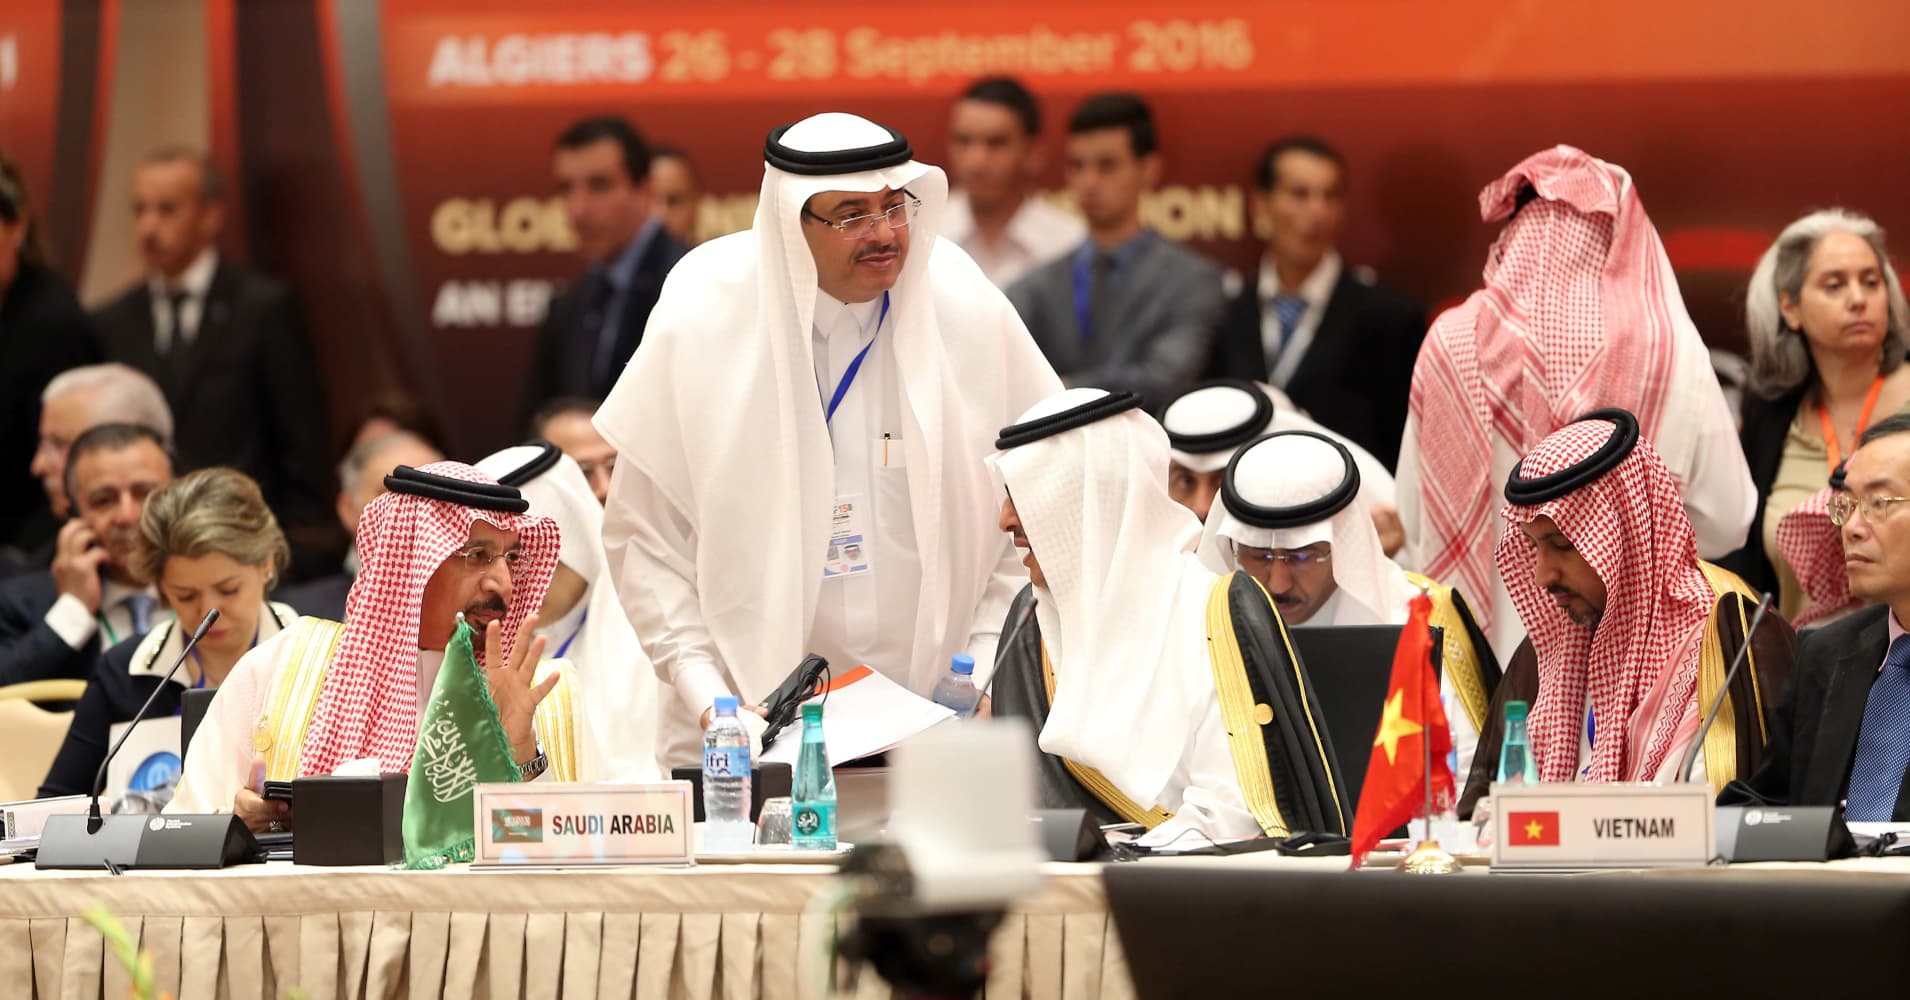 Op-Ed: OPEC still the 'greatest show on earth' for oil traders